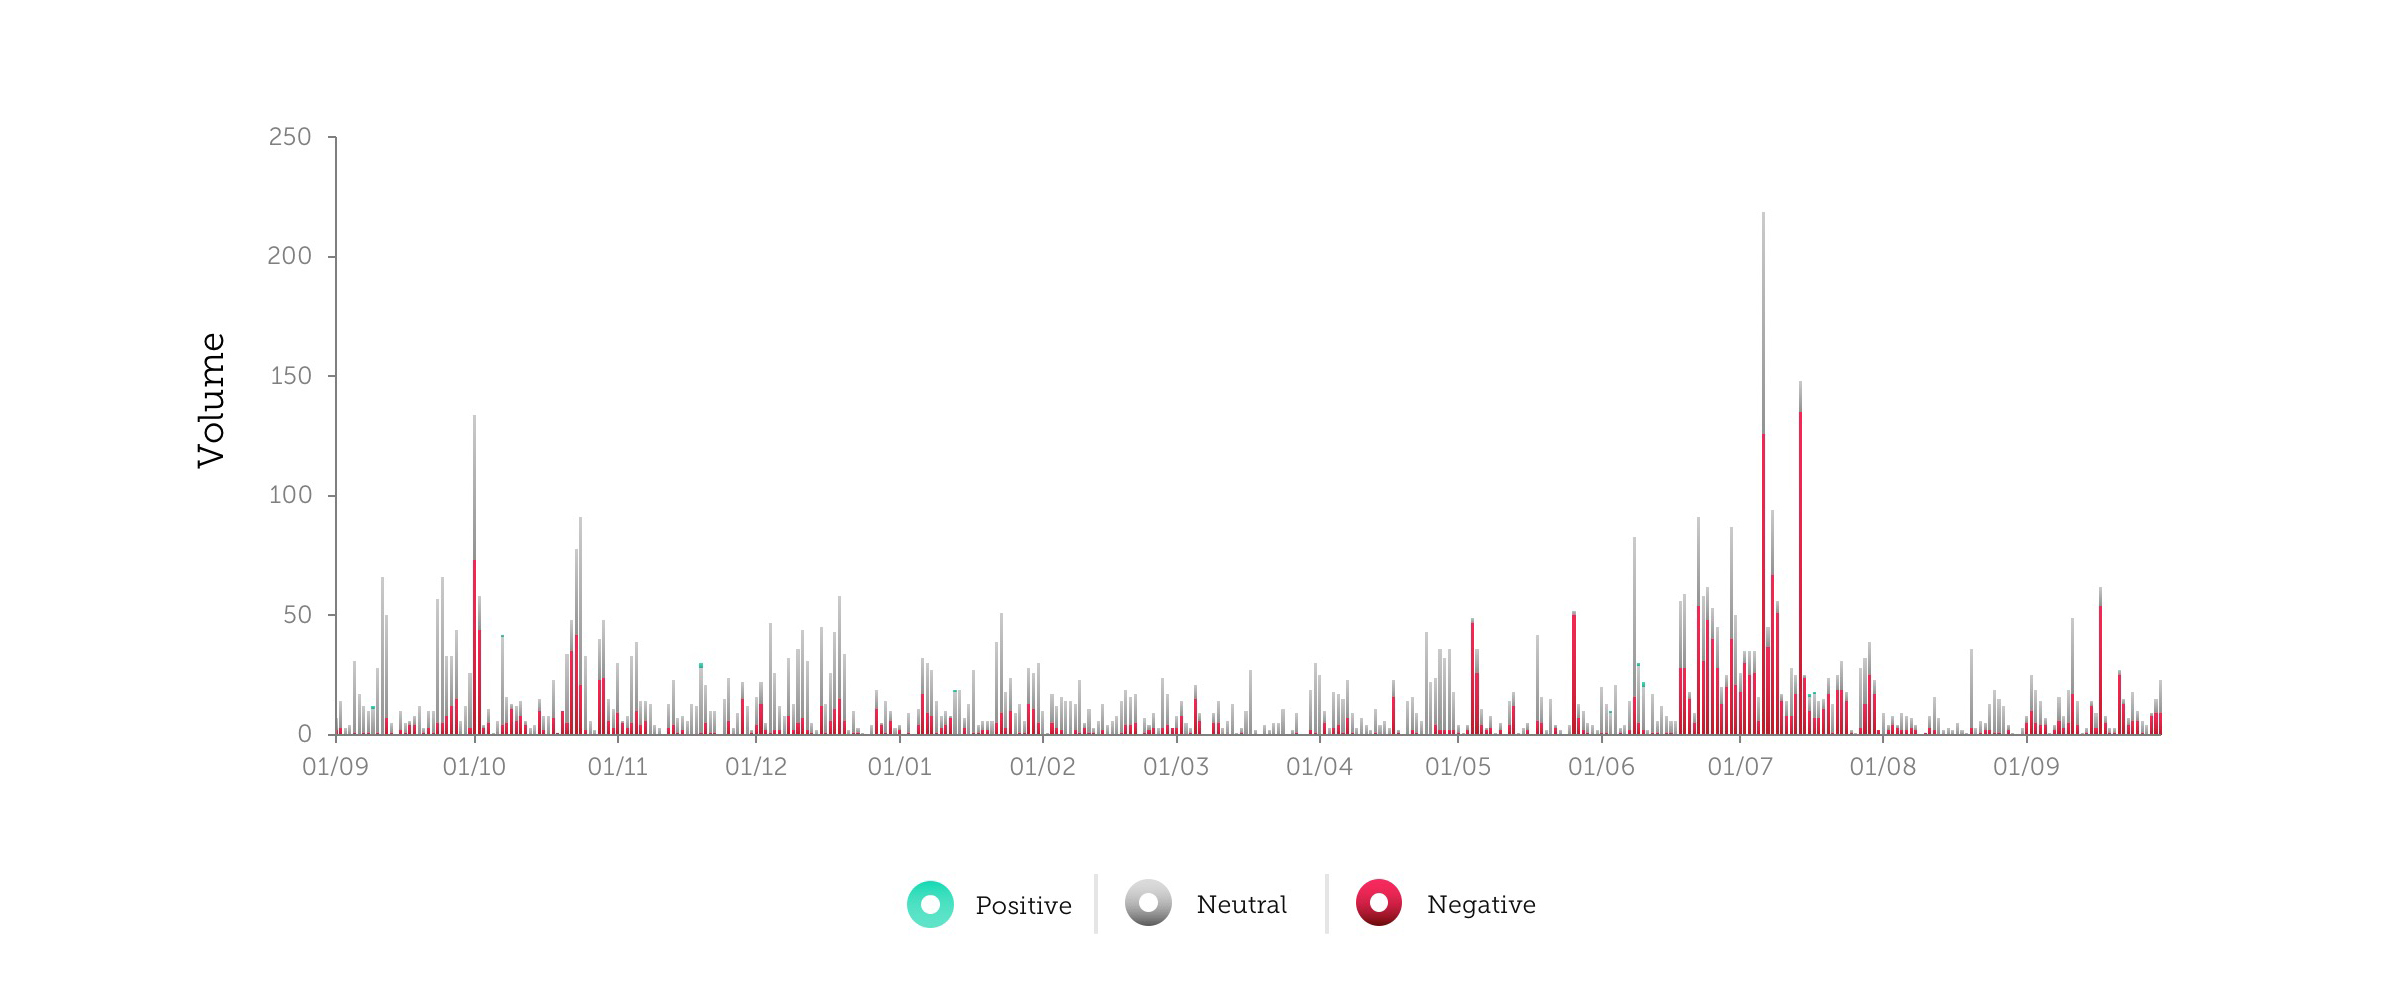 Figure 1. Volume of audit discussions over time, split by sentiment